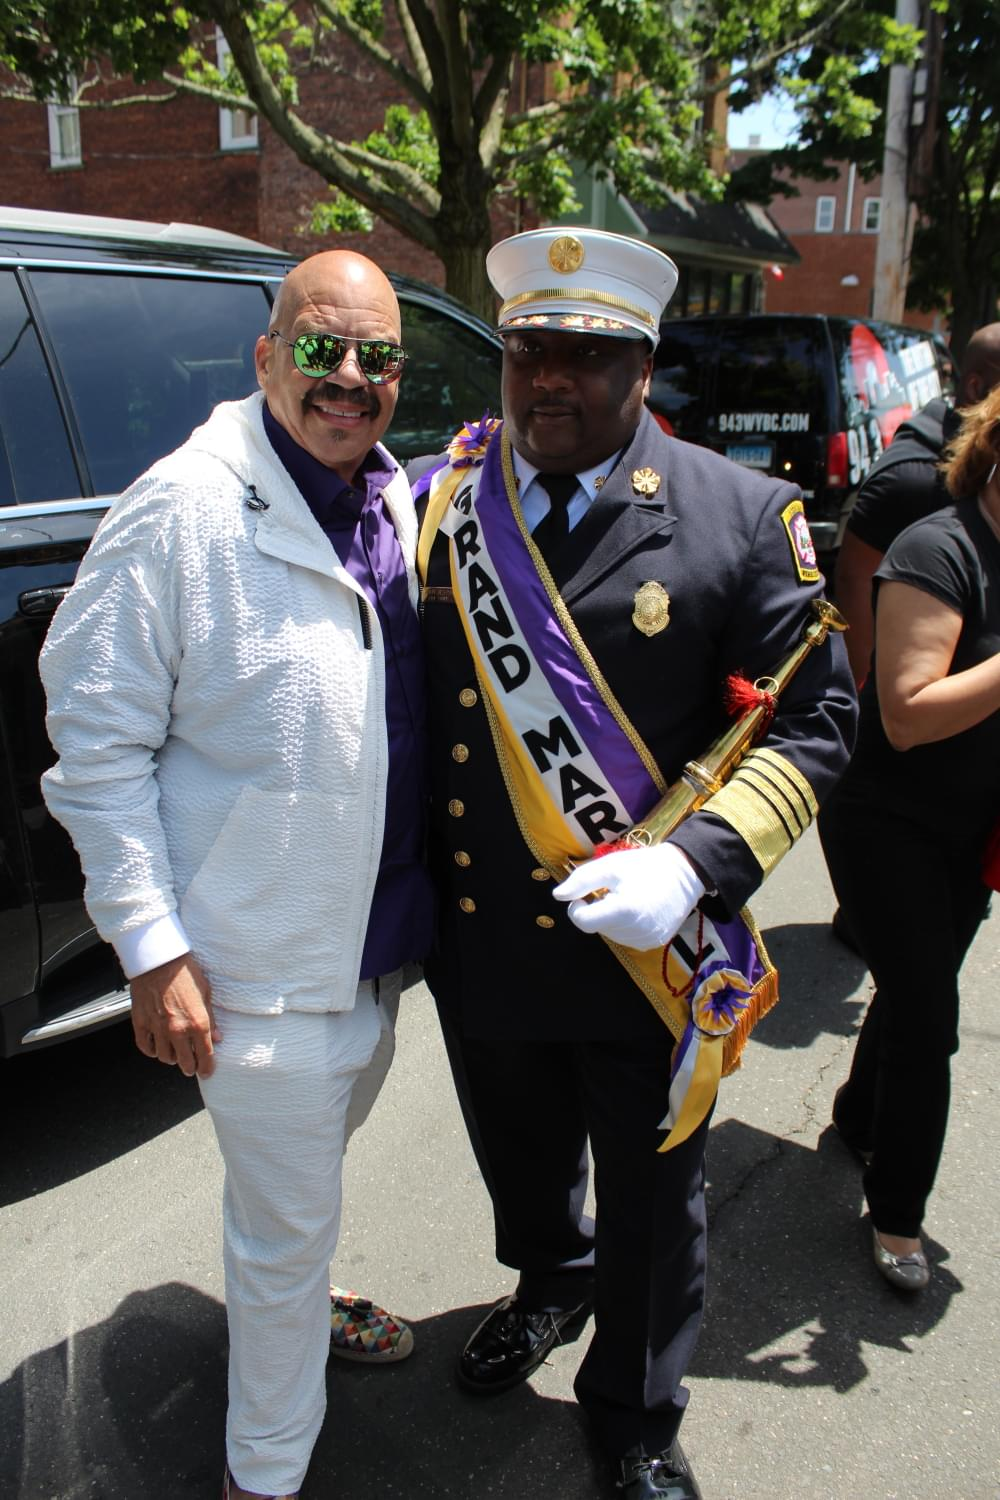 Freddie Fixer Parade with Tom Joyner and Metro PCS